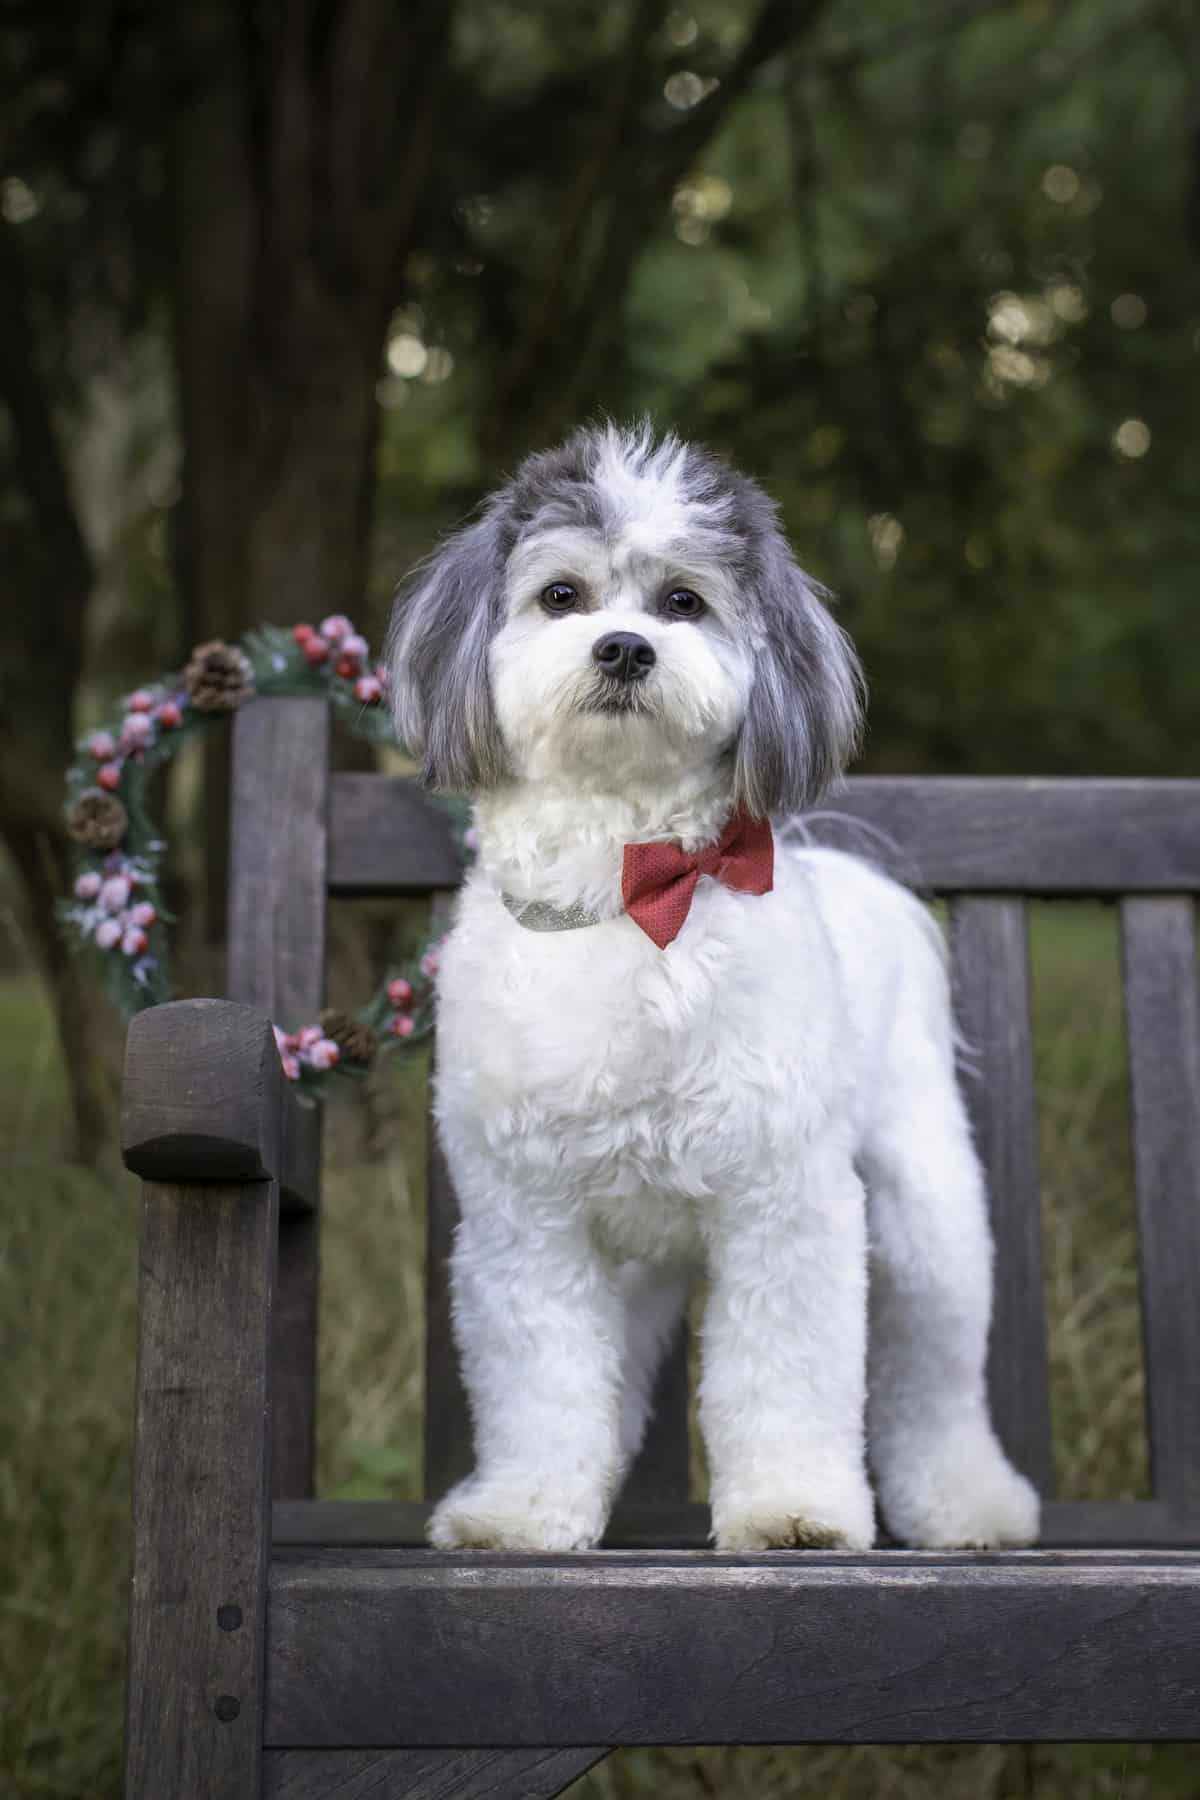 white and gray shichon wearing a red bowtie